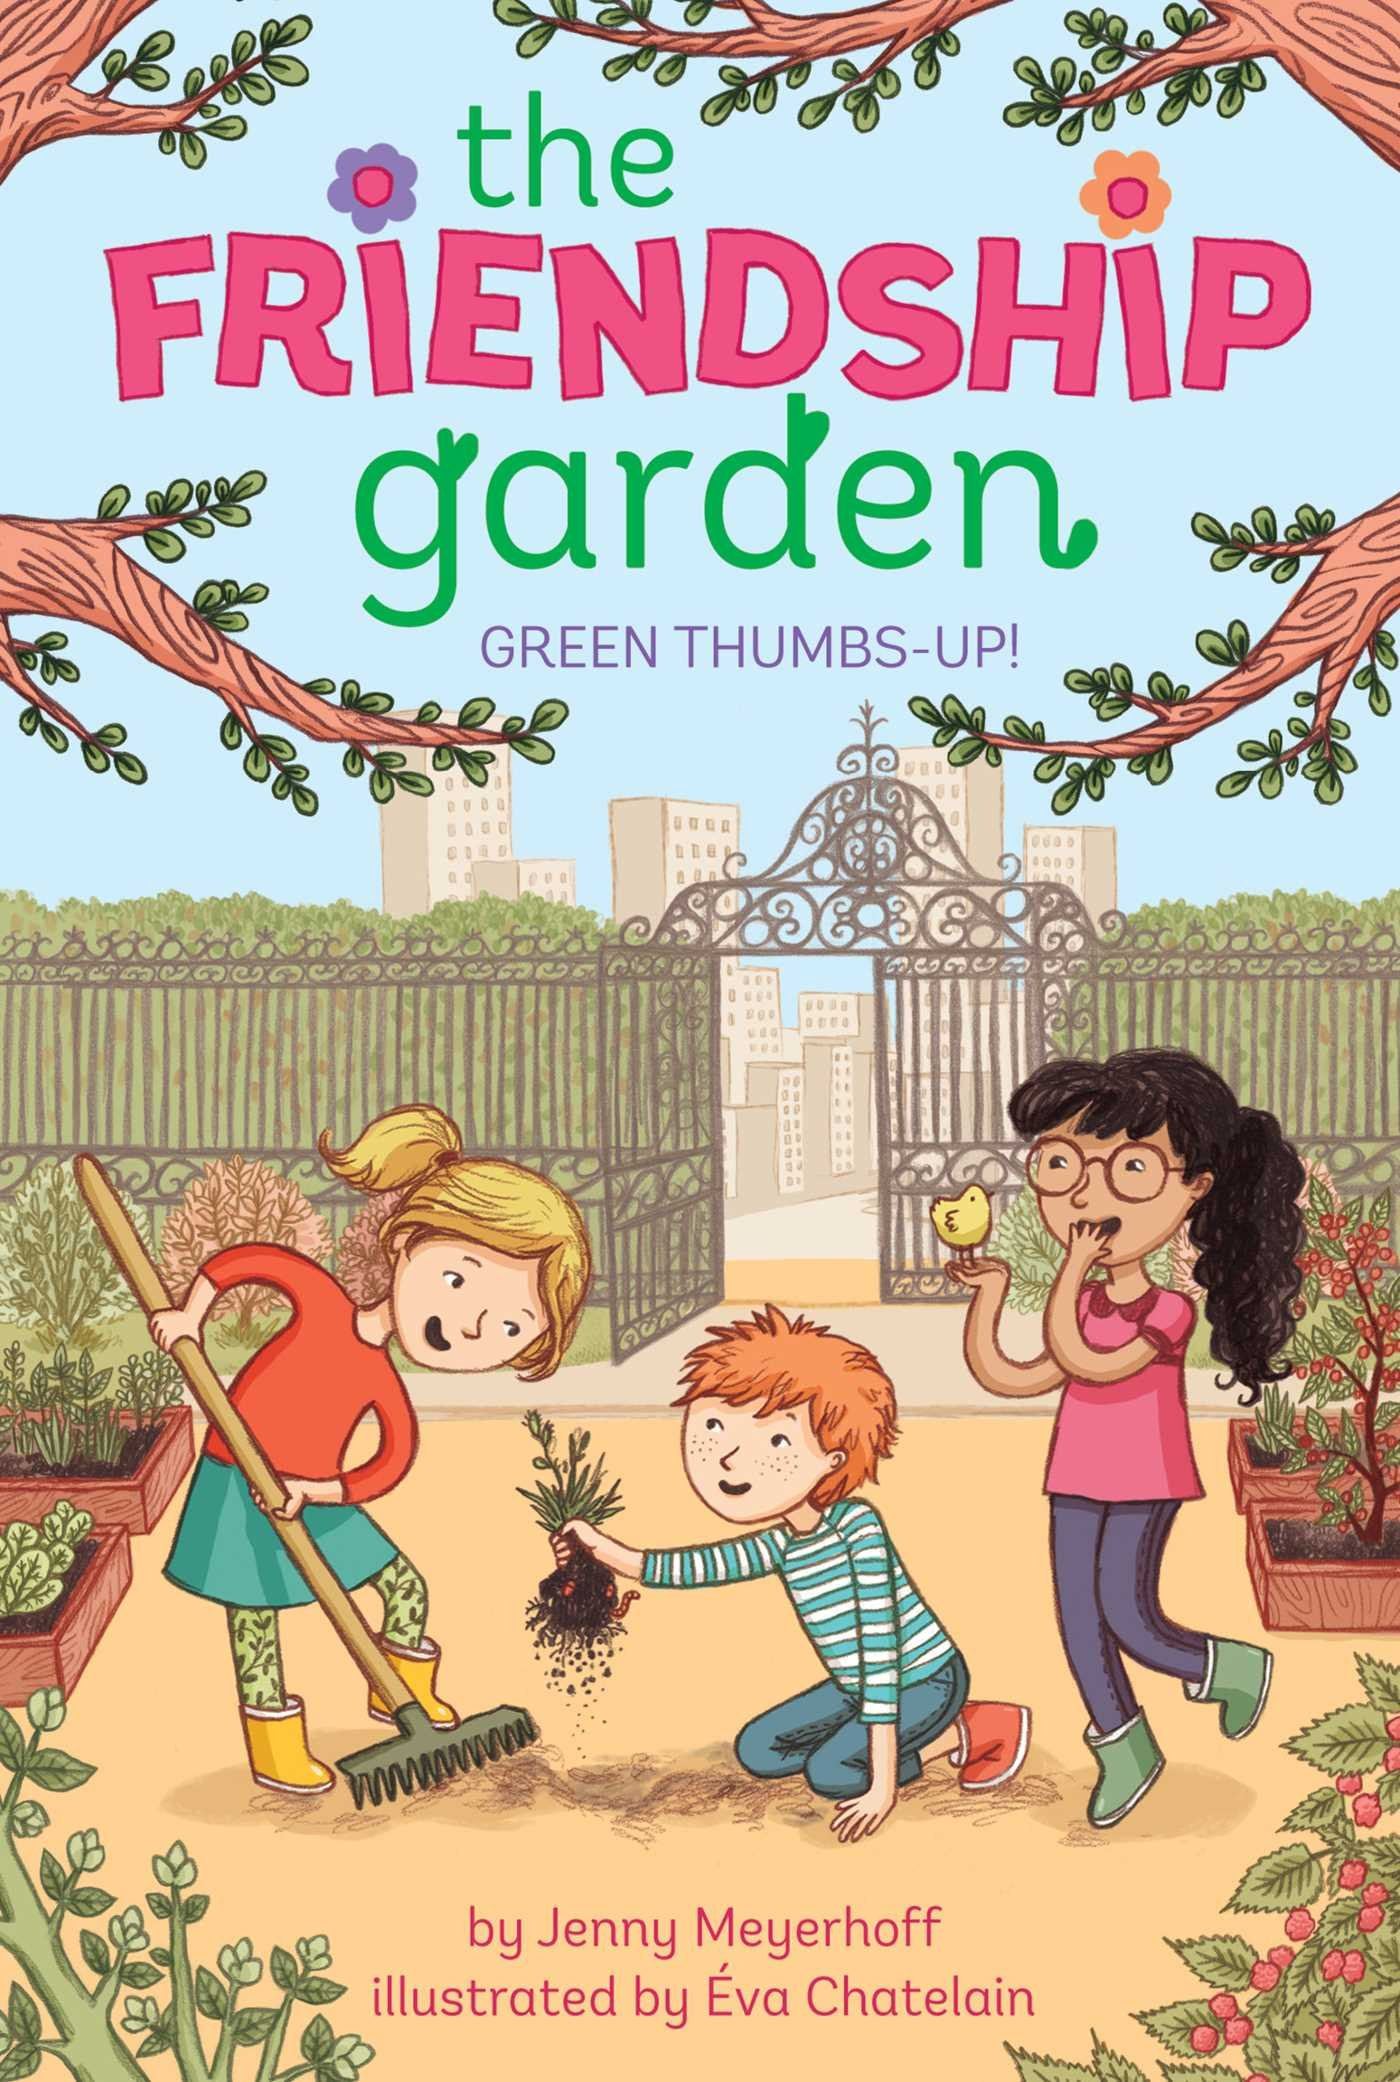 Green Thumbs Up! (The Friendship Garden): Jenny Meyerhoff, Éva Chatelain:  9781481439046: Amazon.com: Books